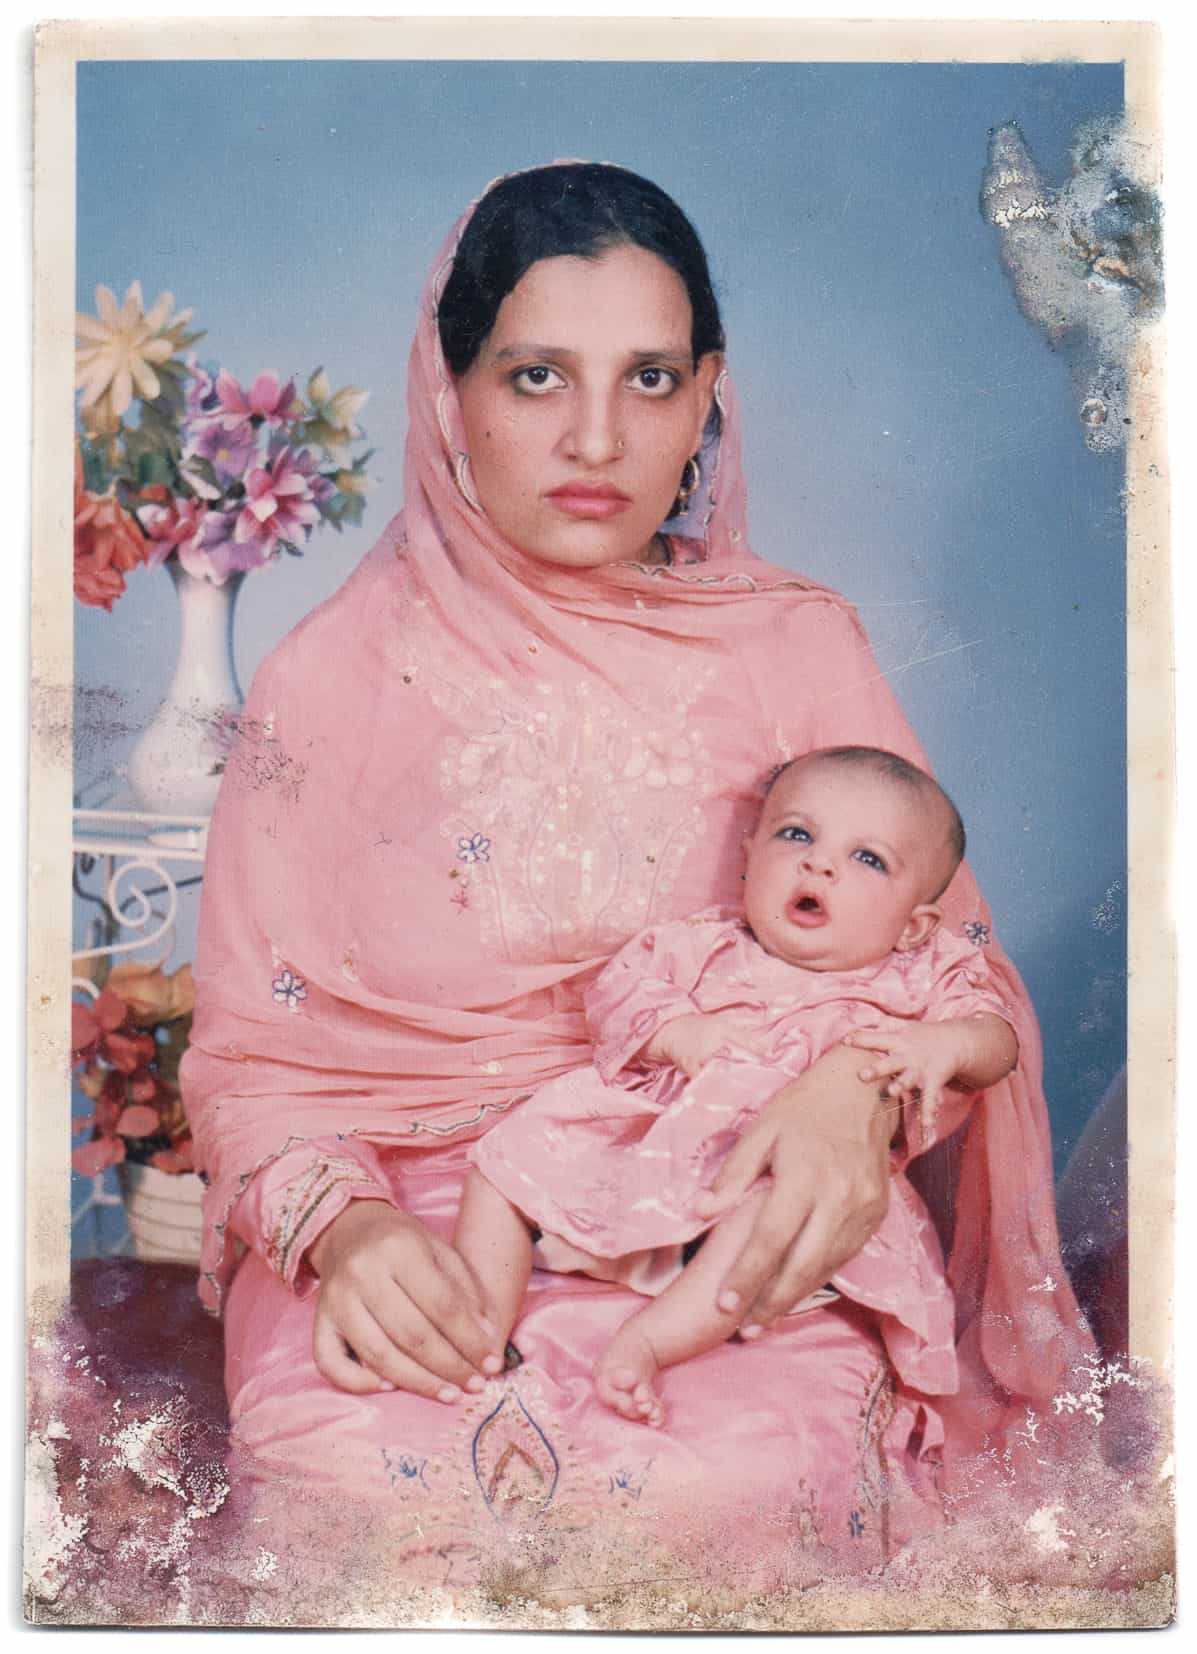 Studio photograph of Nasra Parveen and her daughter, Pakistan, 1970s